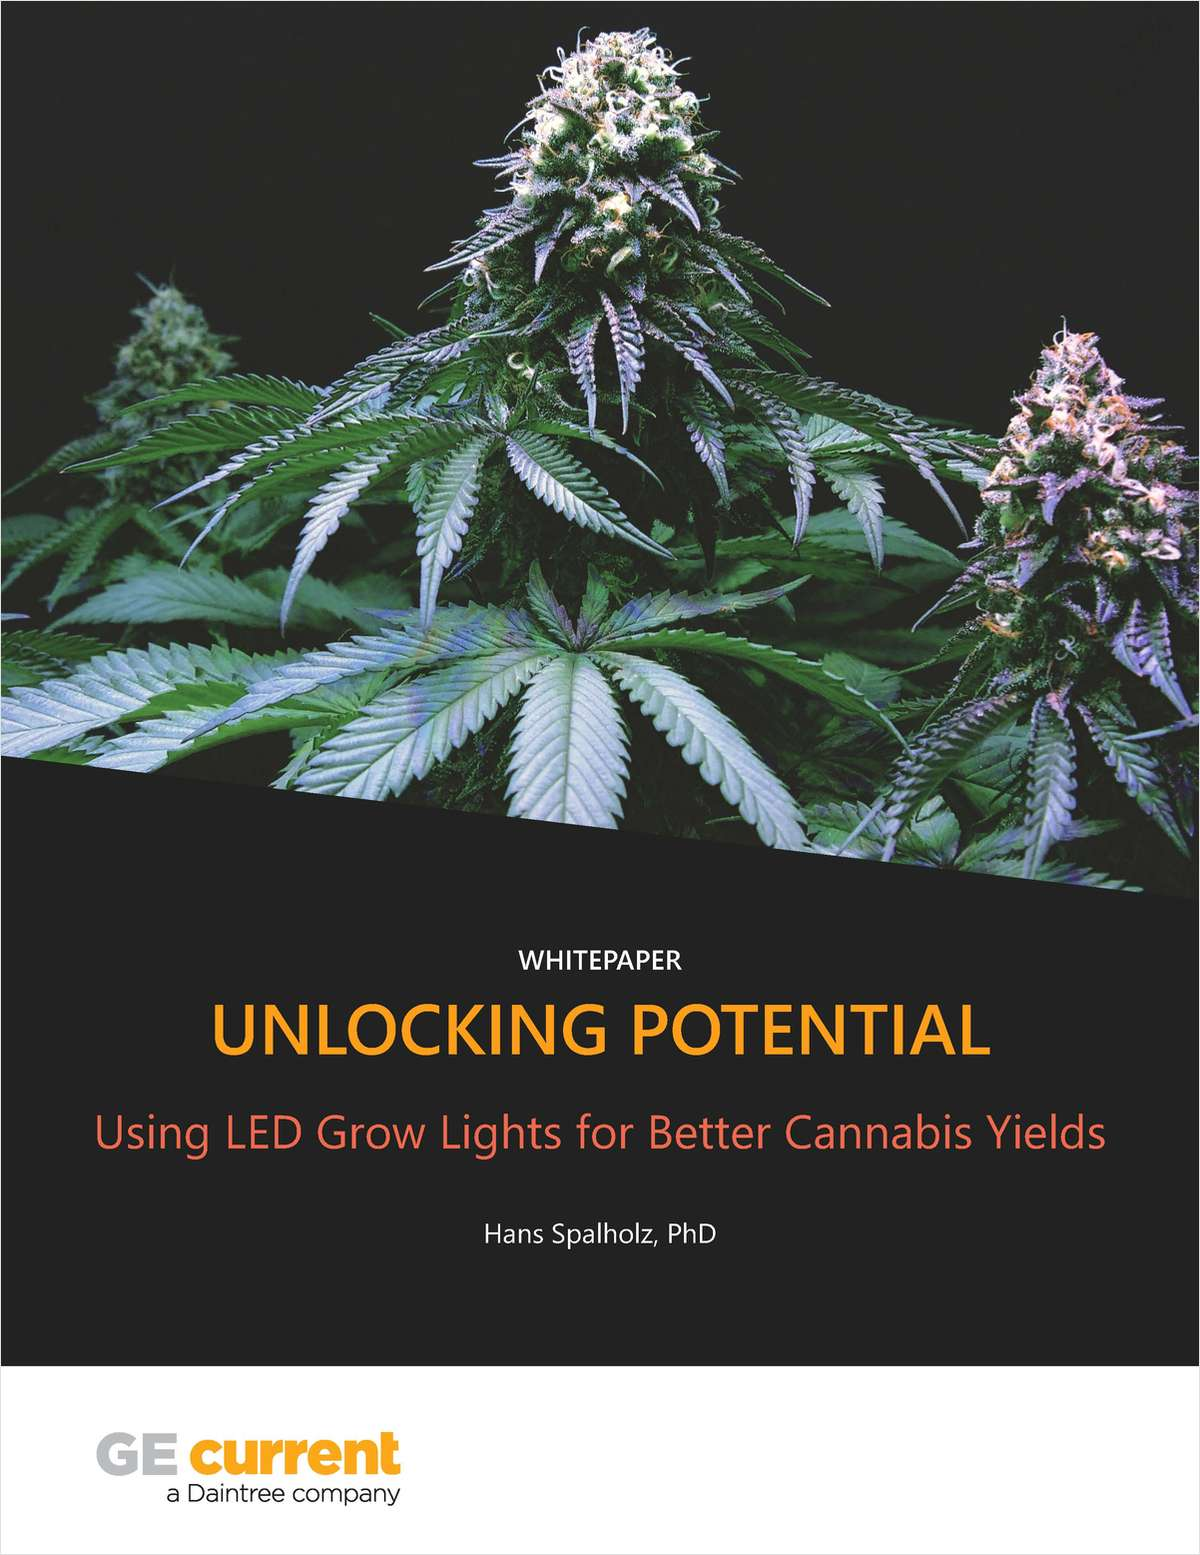 Unlocking Potential: Using LED Grow Lights for Better Cannabis Yields